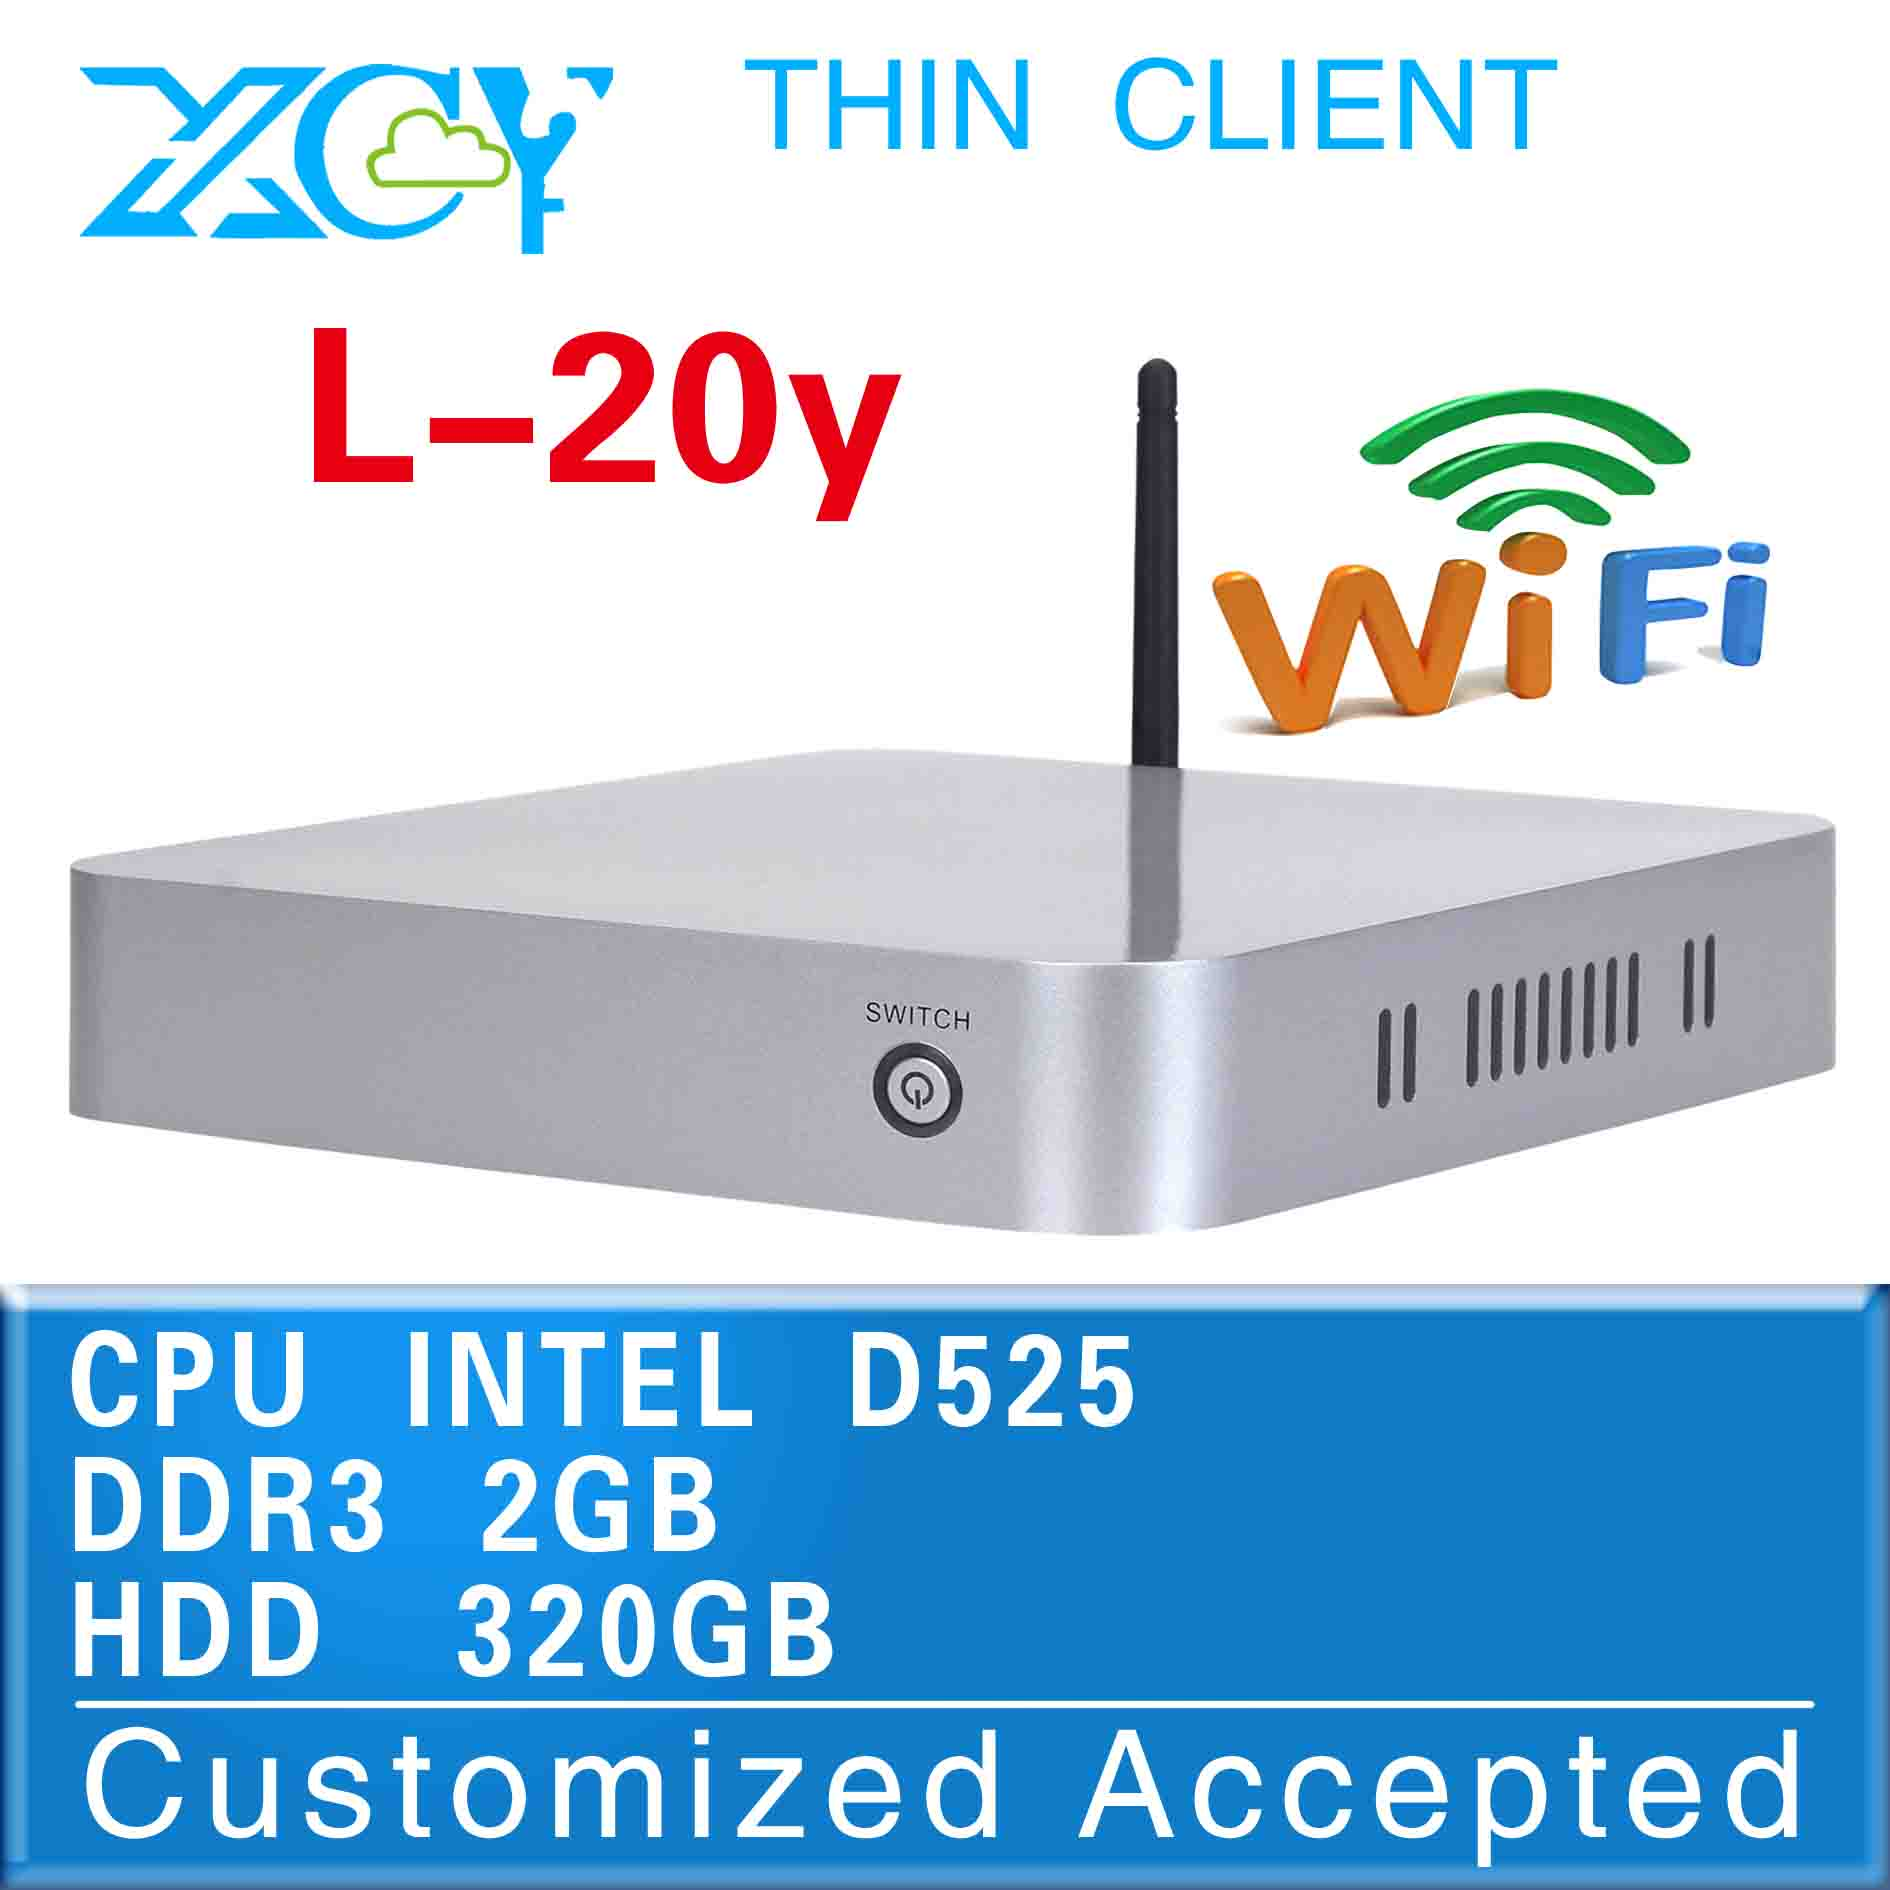 mini itx linux micro pc virtual desktop L-20Y D525 2G RAM 320G HDD support Linux OS Ubuntu facrory competitive price(China (Mainland))